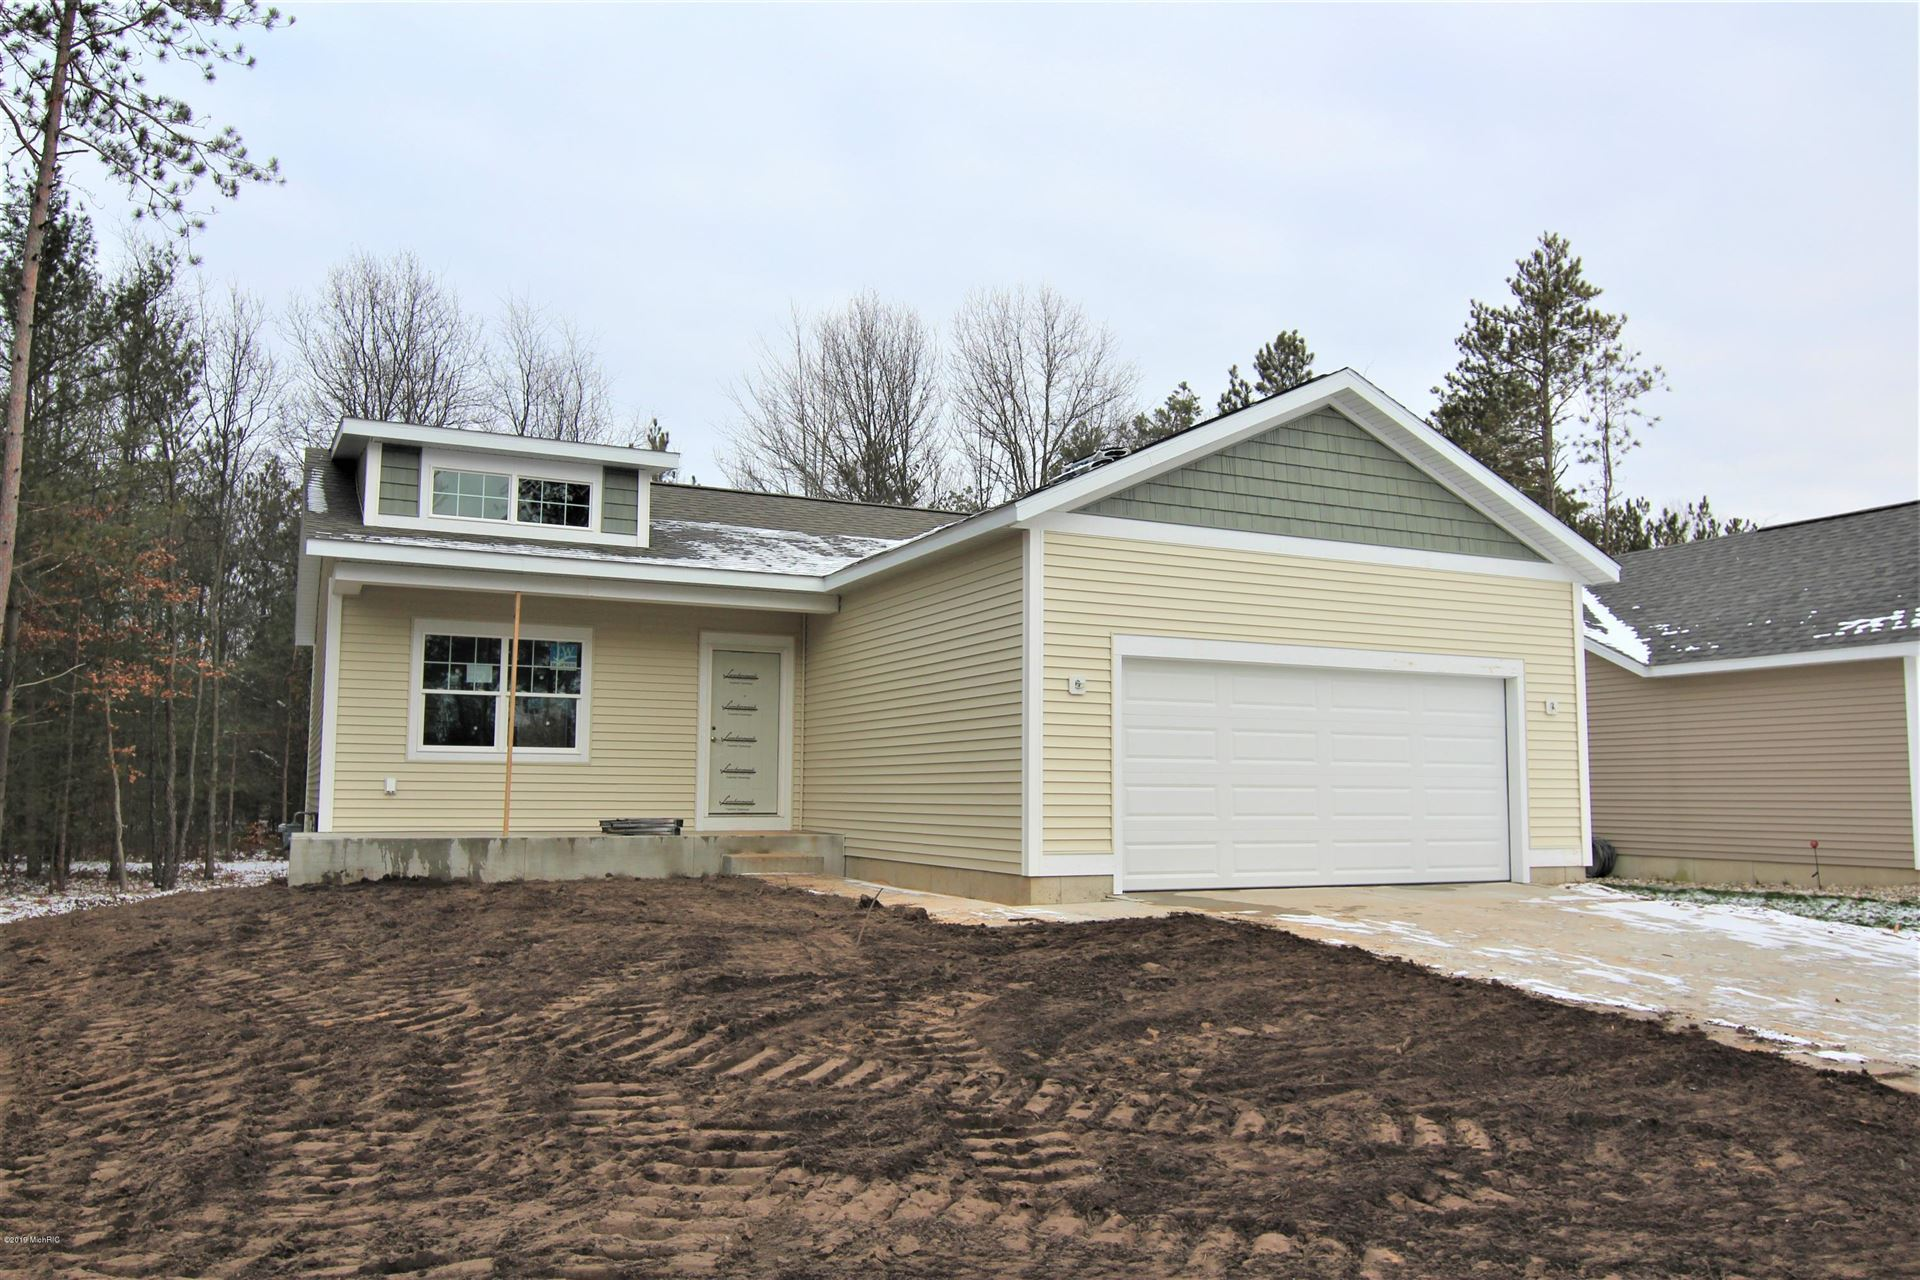 2480 Eagle Ridge, Muskegon, MI 49444 - #: 19045339